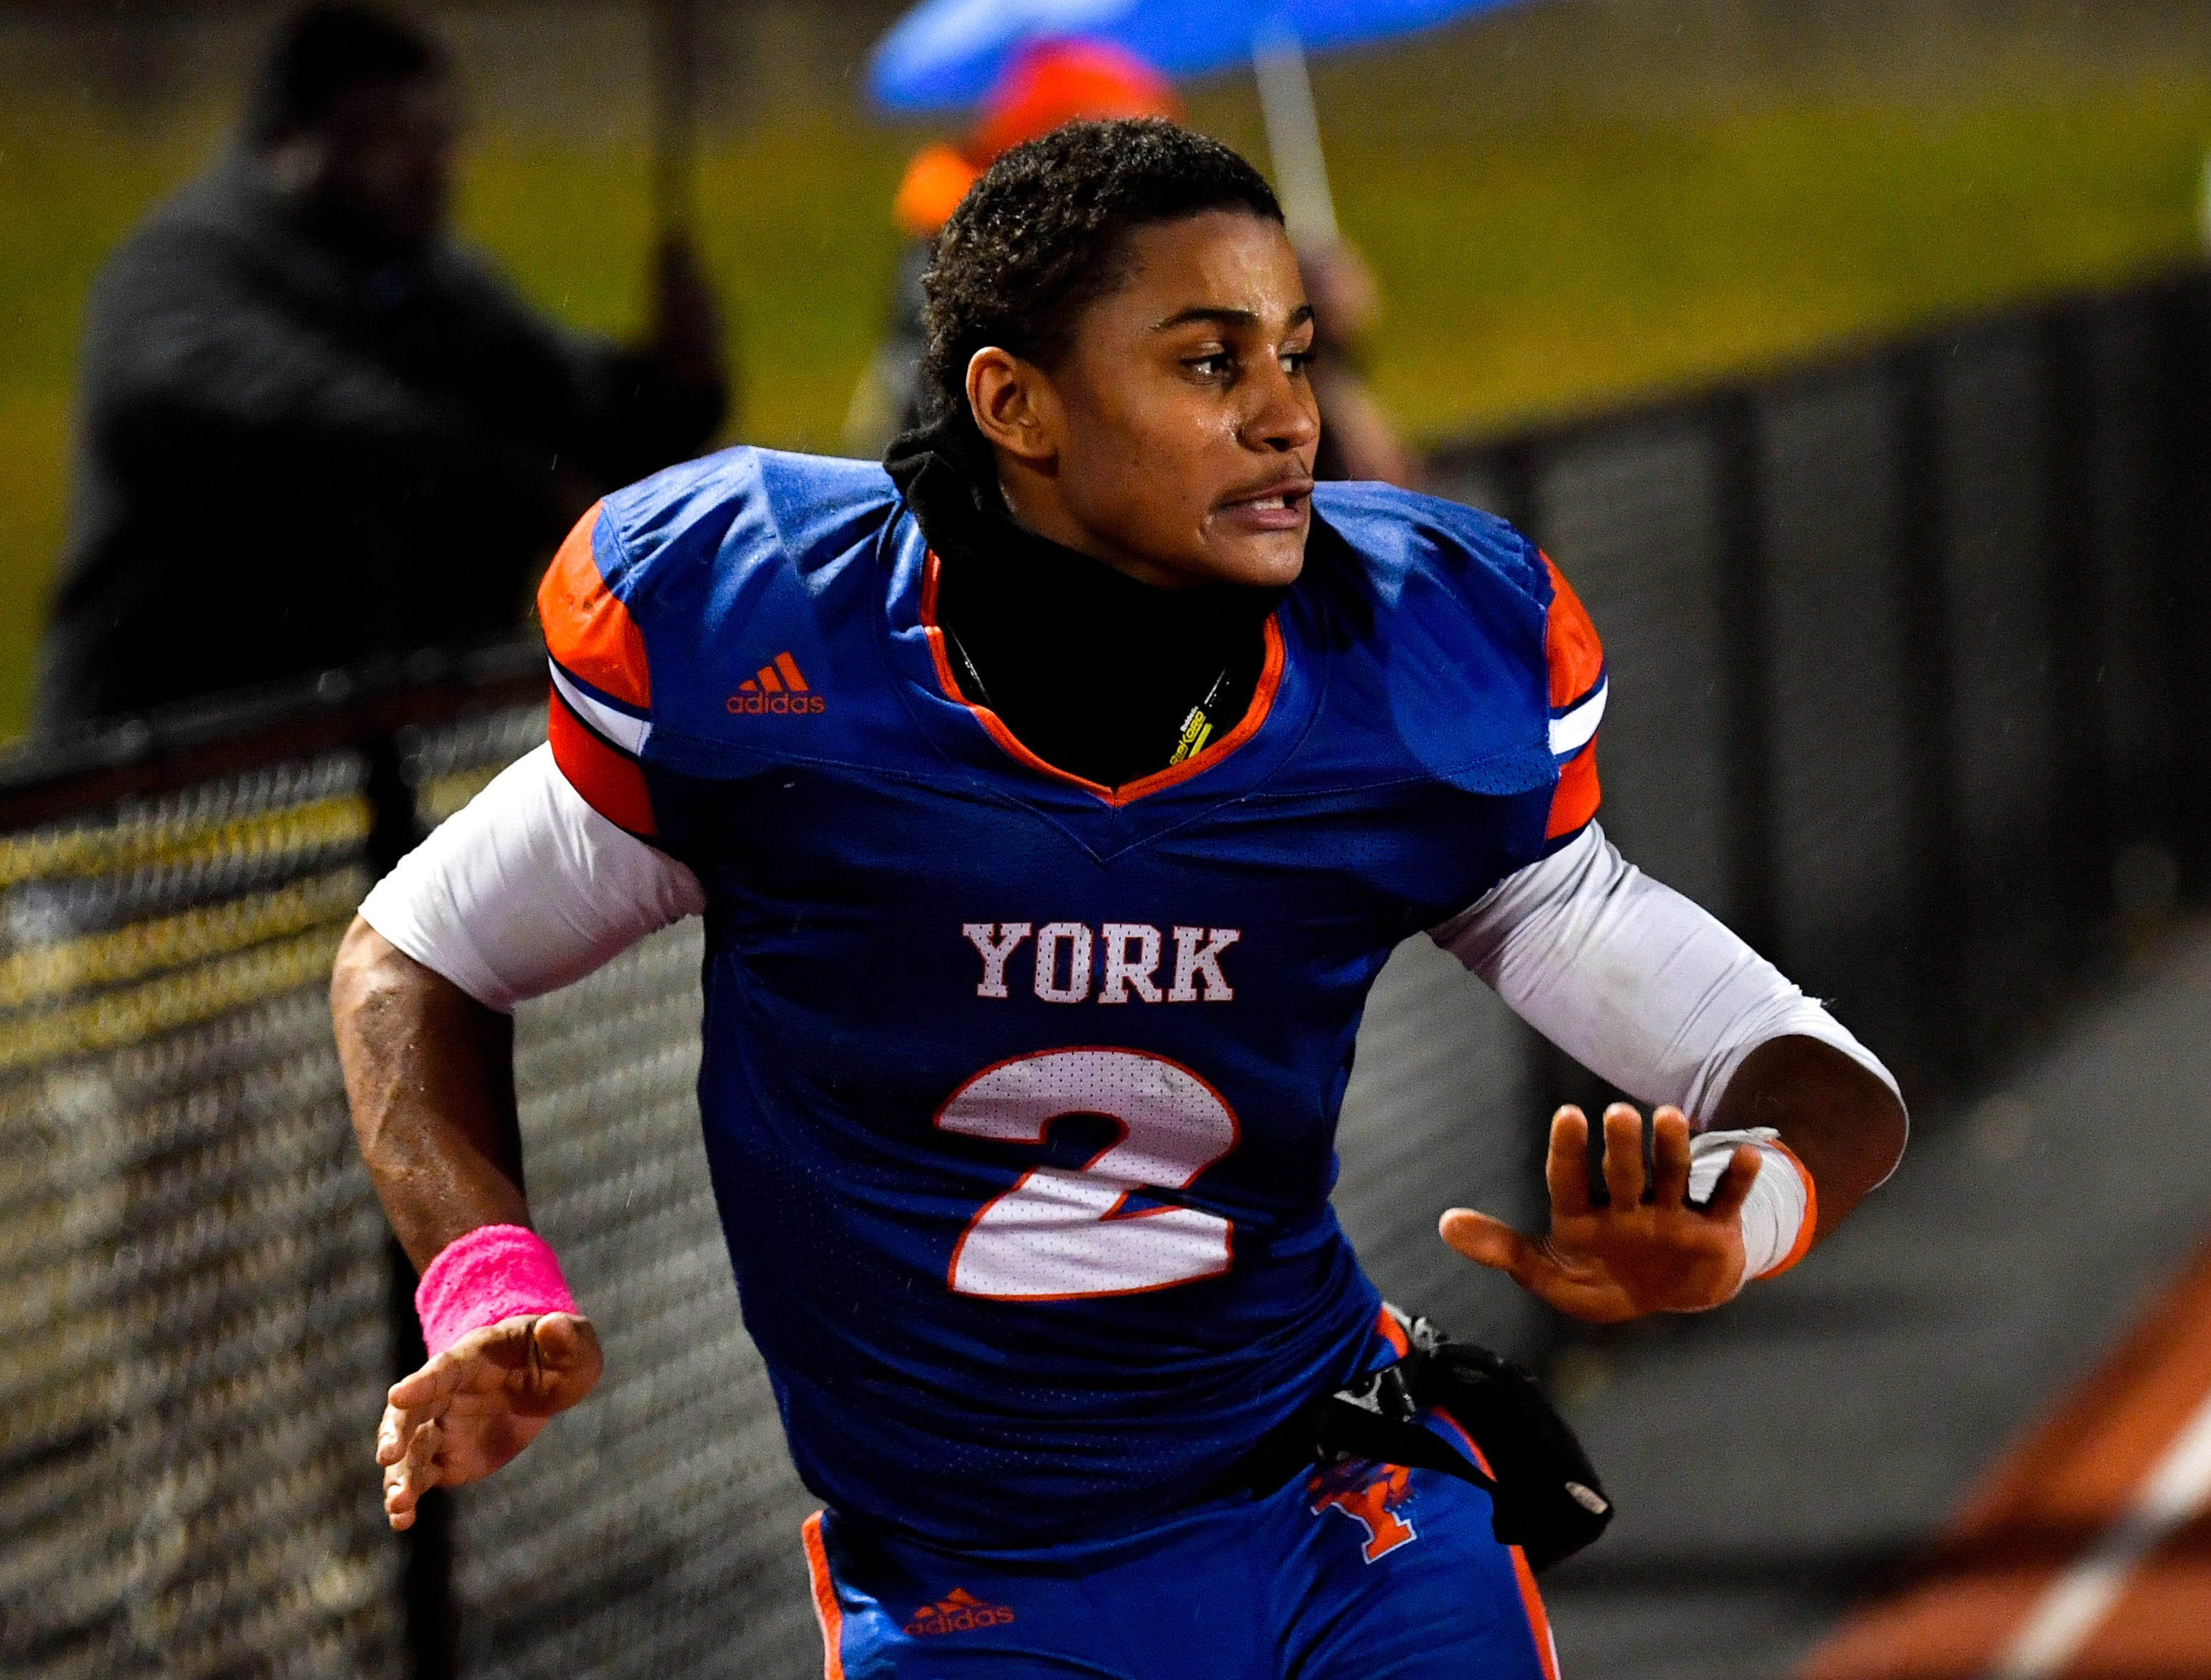 Tobee Stokes dances after York High's win over Central York, Friday, October 26, 2018. The Bearcats defeated the Panthers 54-14.